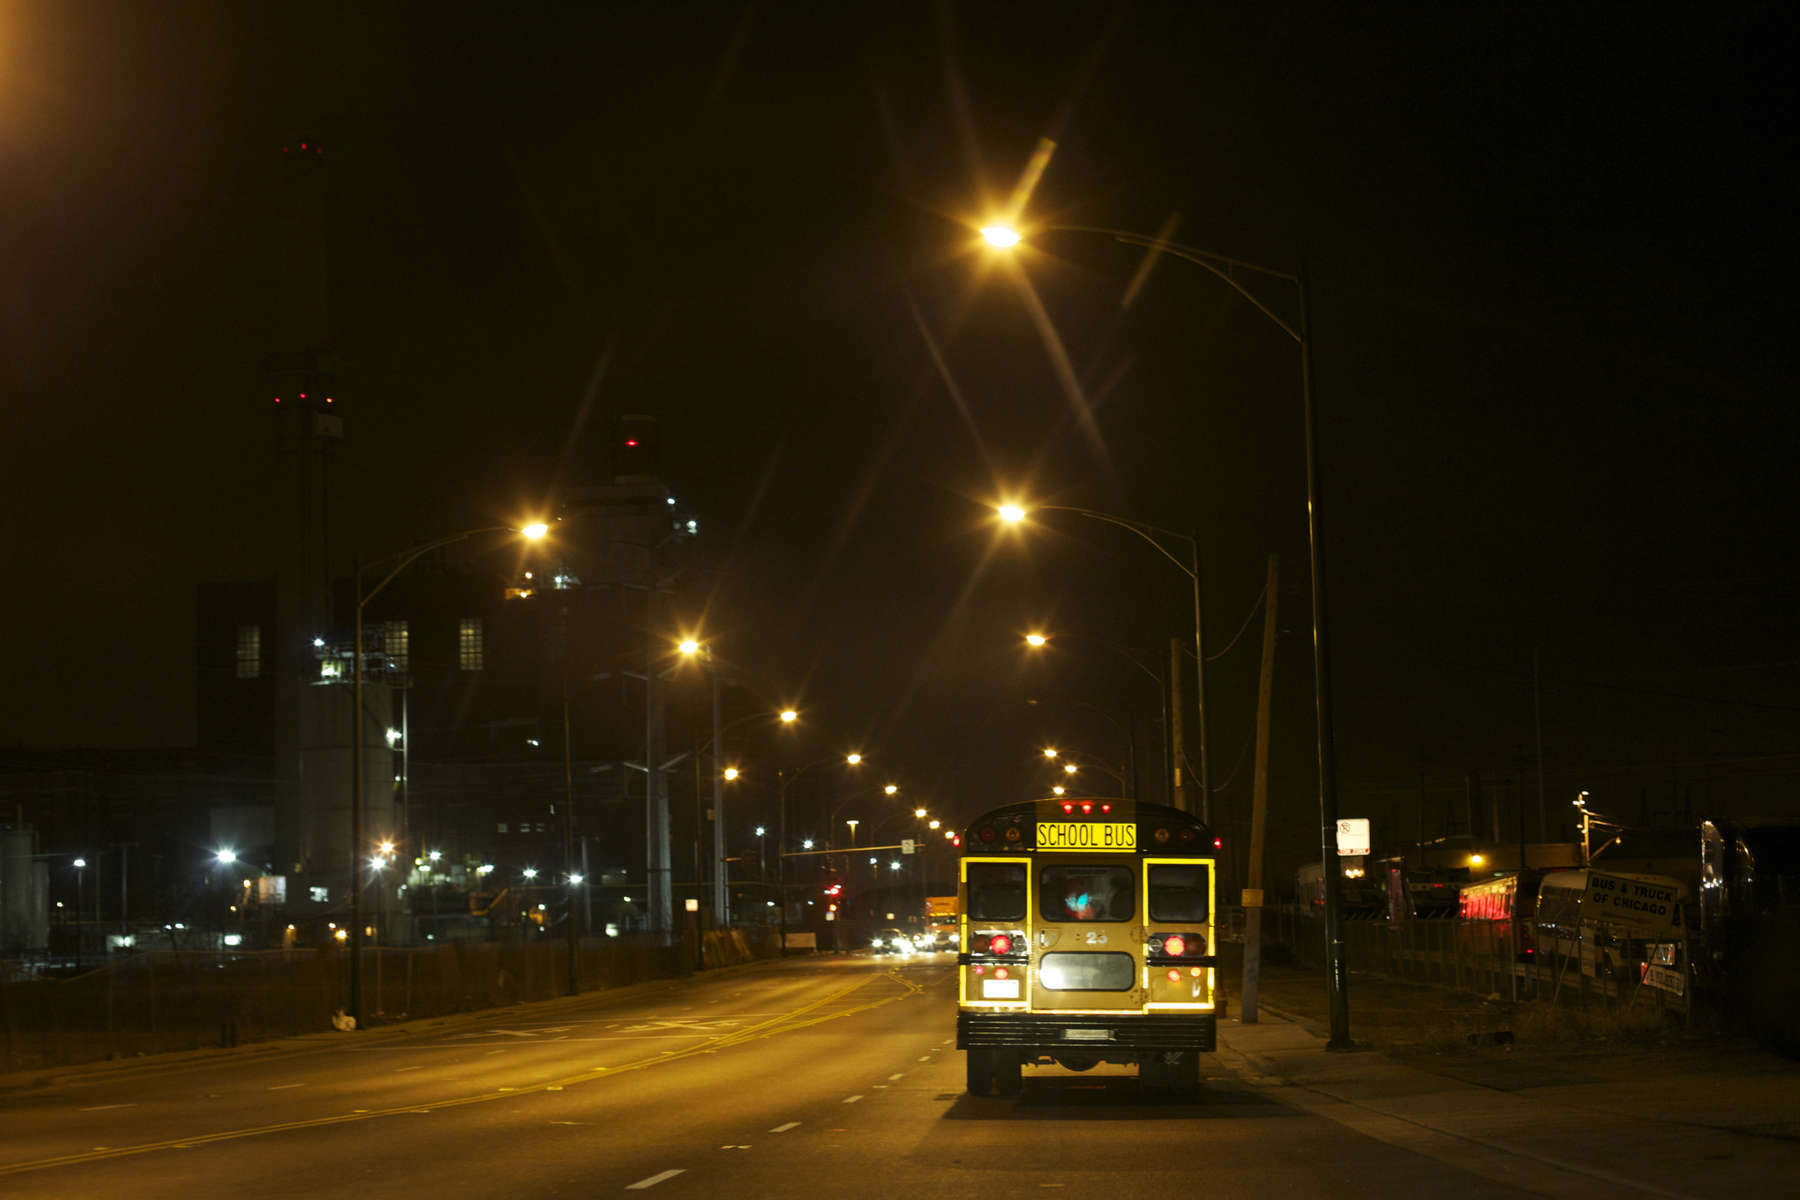 The bus carrying the temp workers heads south on Cicero Avenue in Chicago toward Interstate 55 at 5am. Their shifts will begin at 6am, and the workers will return home by bus or van.